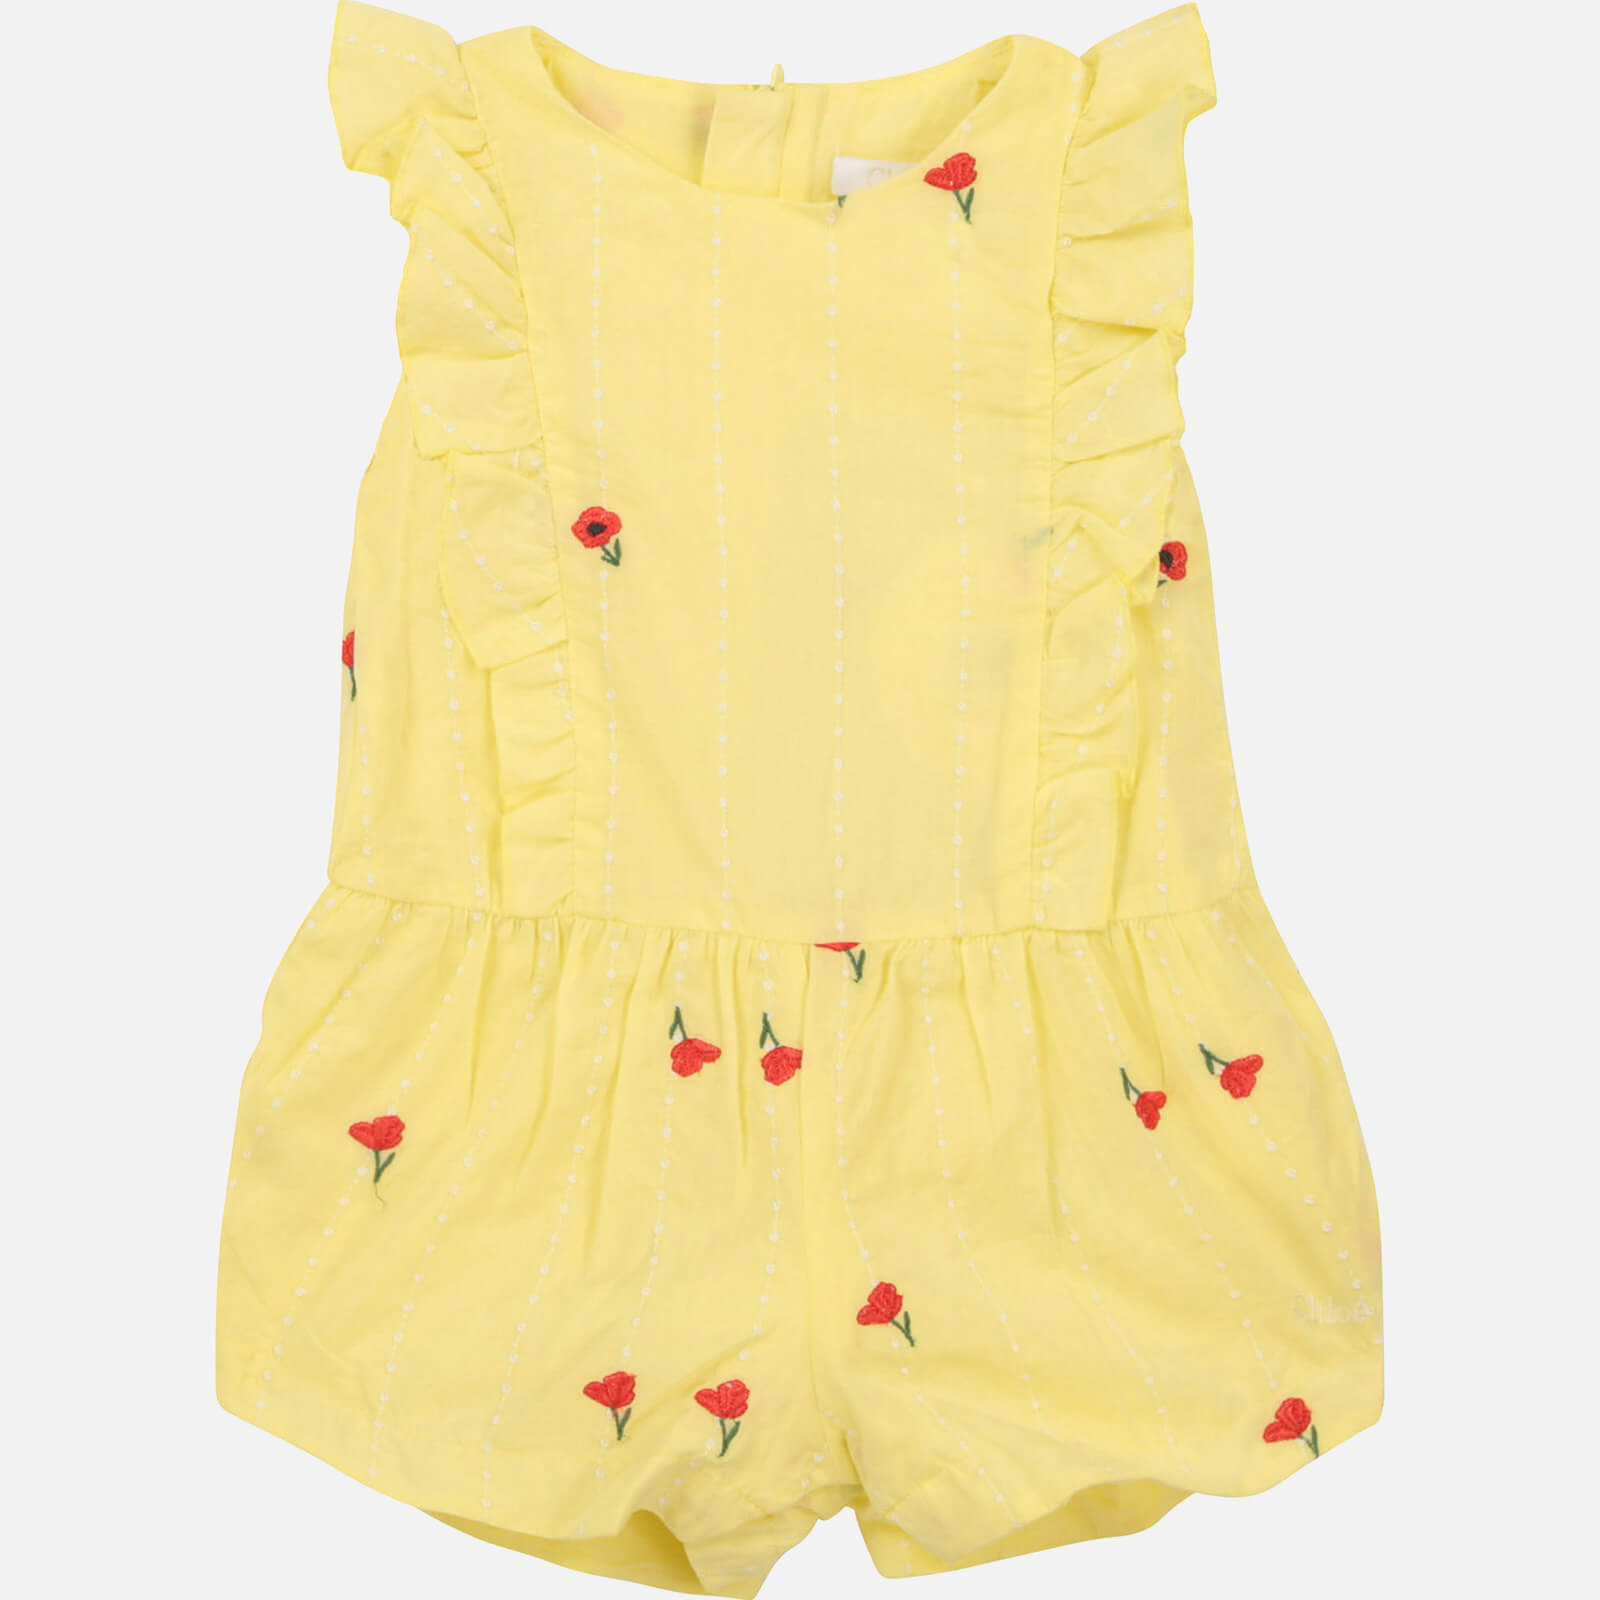 Chloe Girls' Toddlers All In One Romper - Lime - 9-12 months